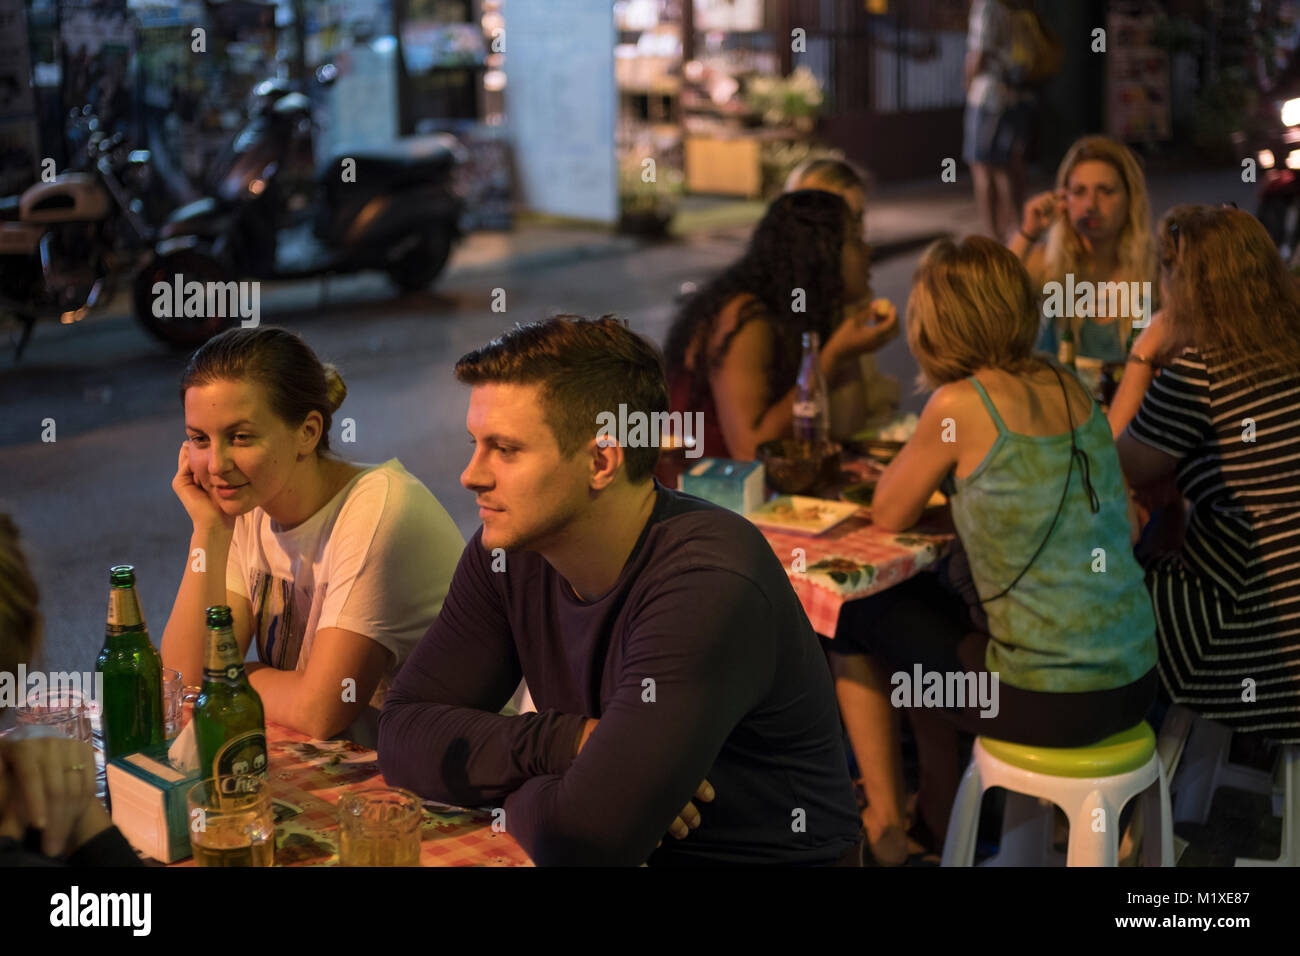 Chiang Mai nightlife. - Stock Image